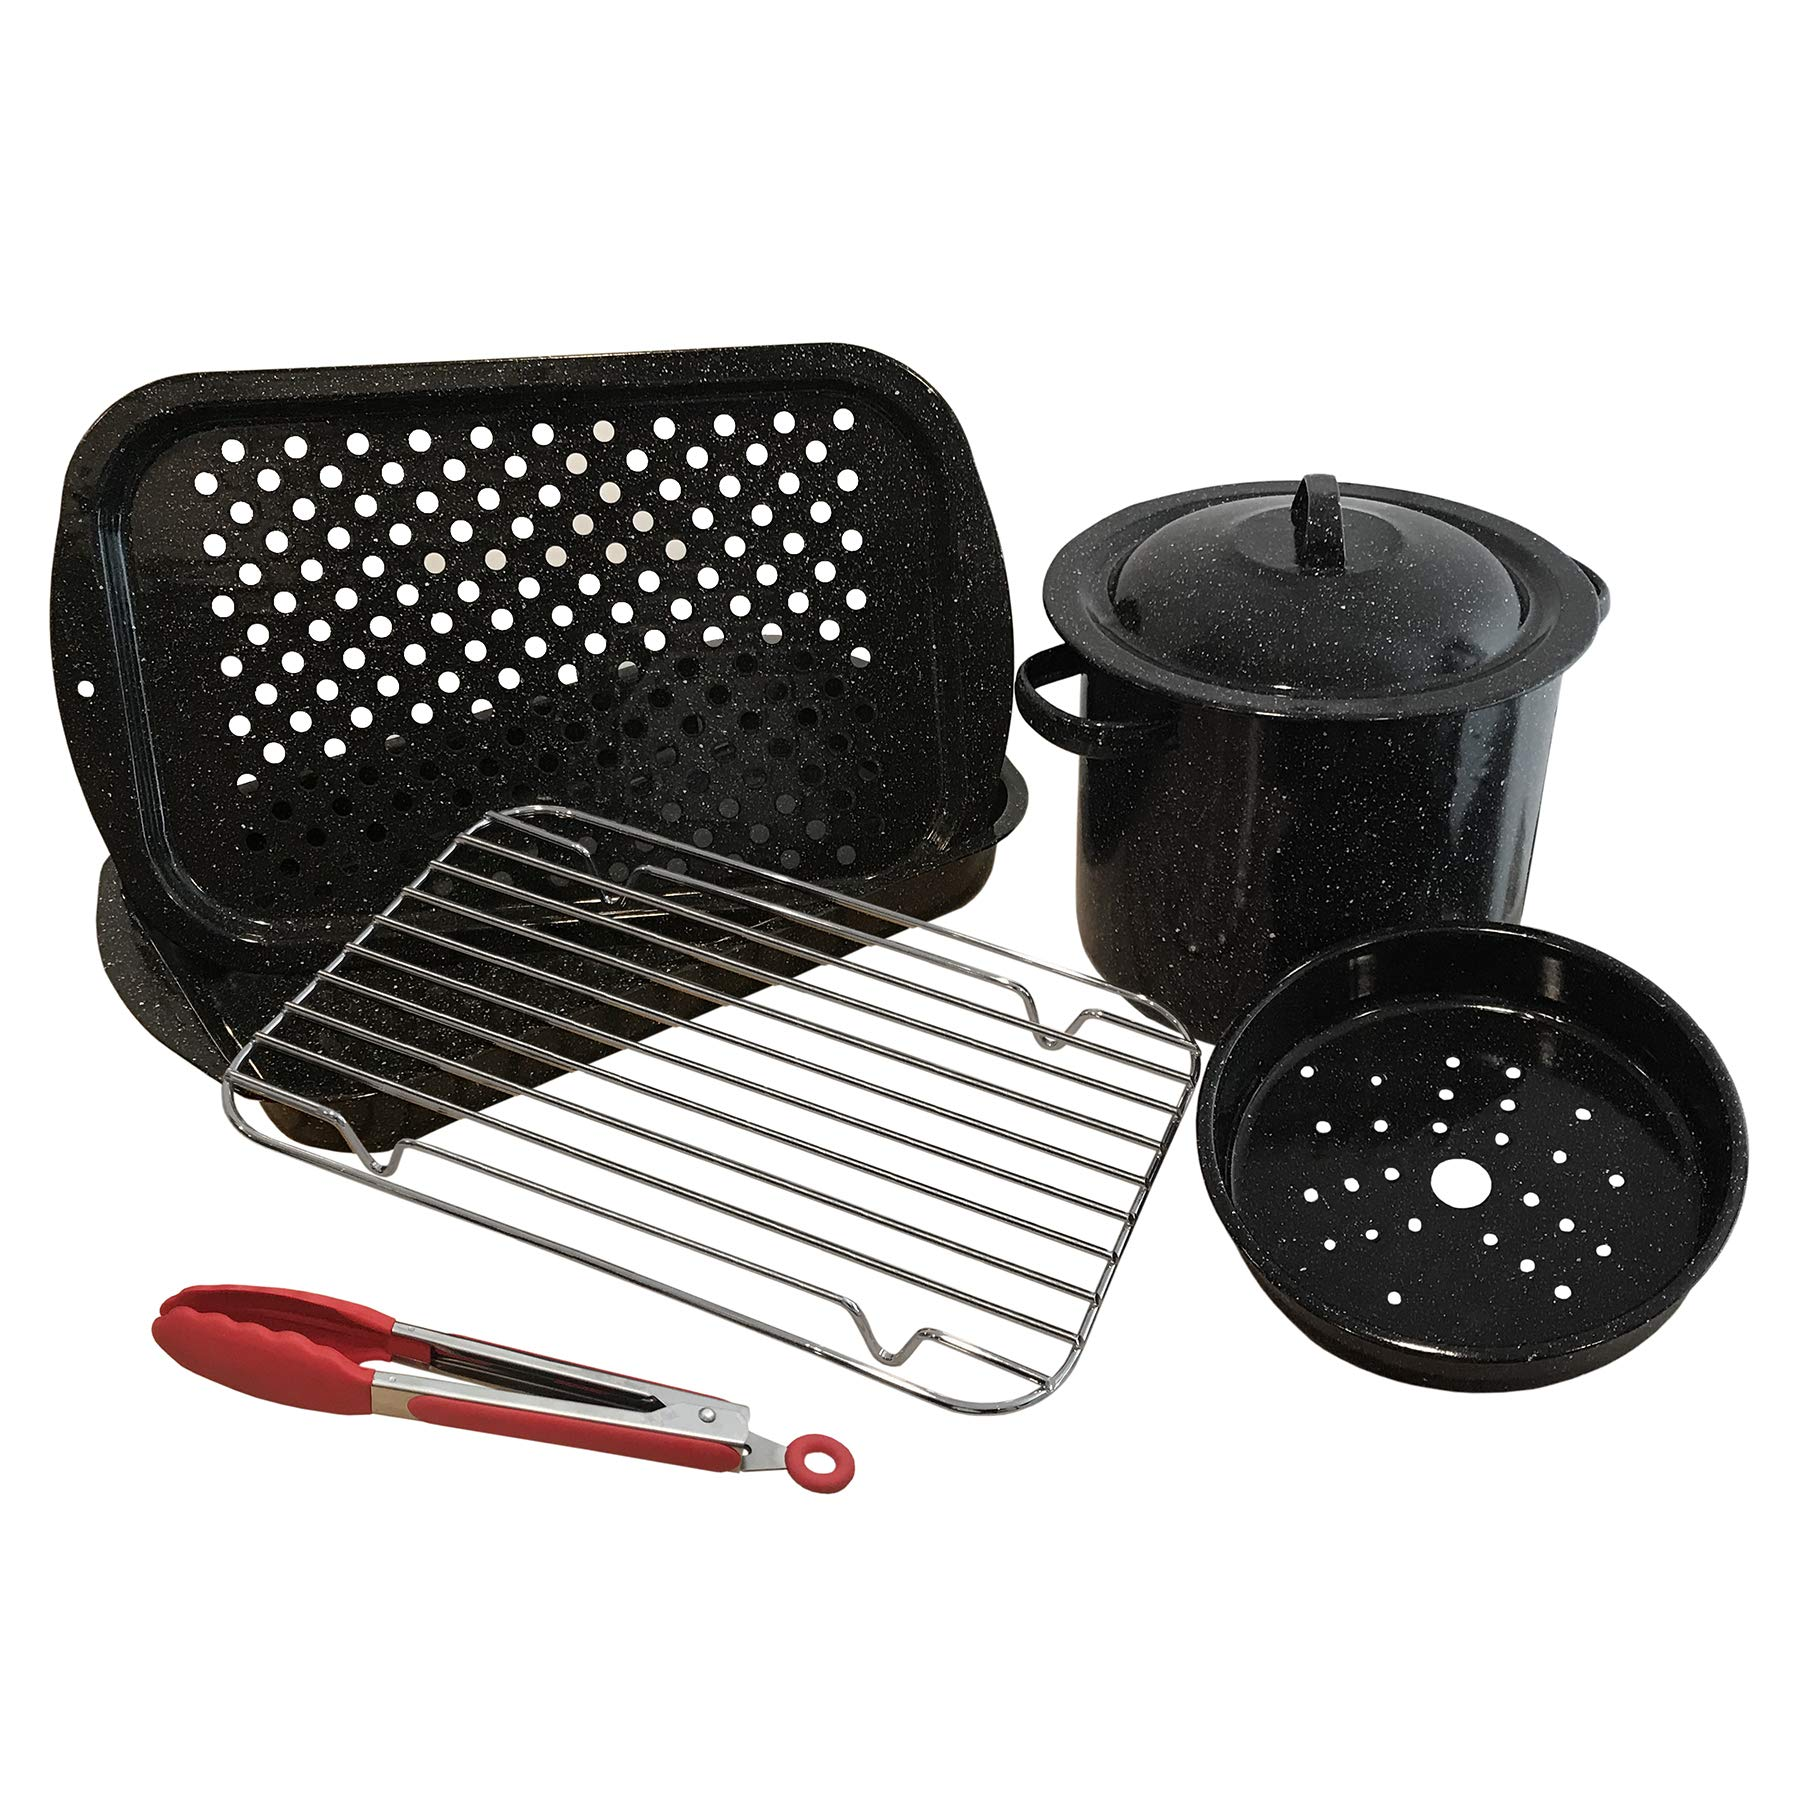 Granite Ware F6280DS-1 Bake Broil & Grill w/Stock Pot/Steamer & Tongs Healthy Cooking Set, 7 pc, Black